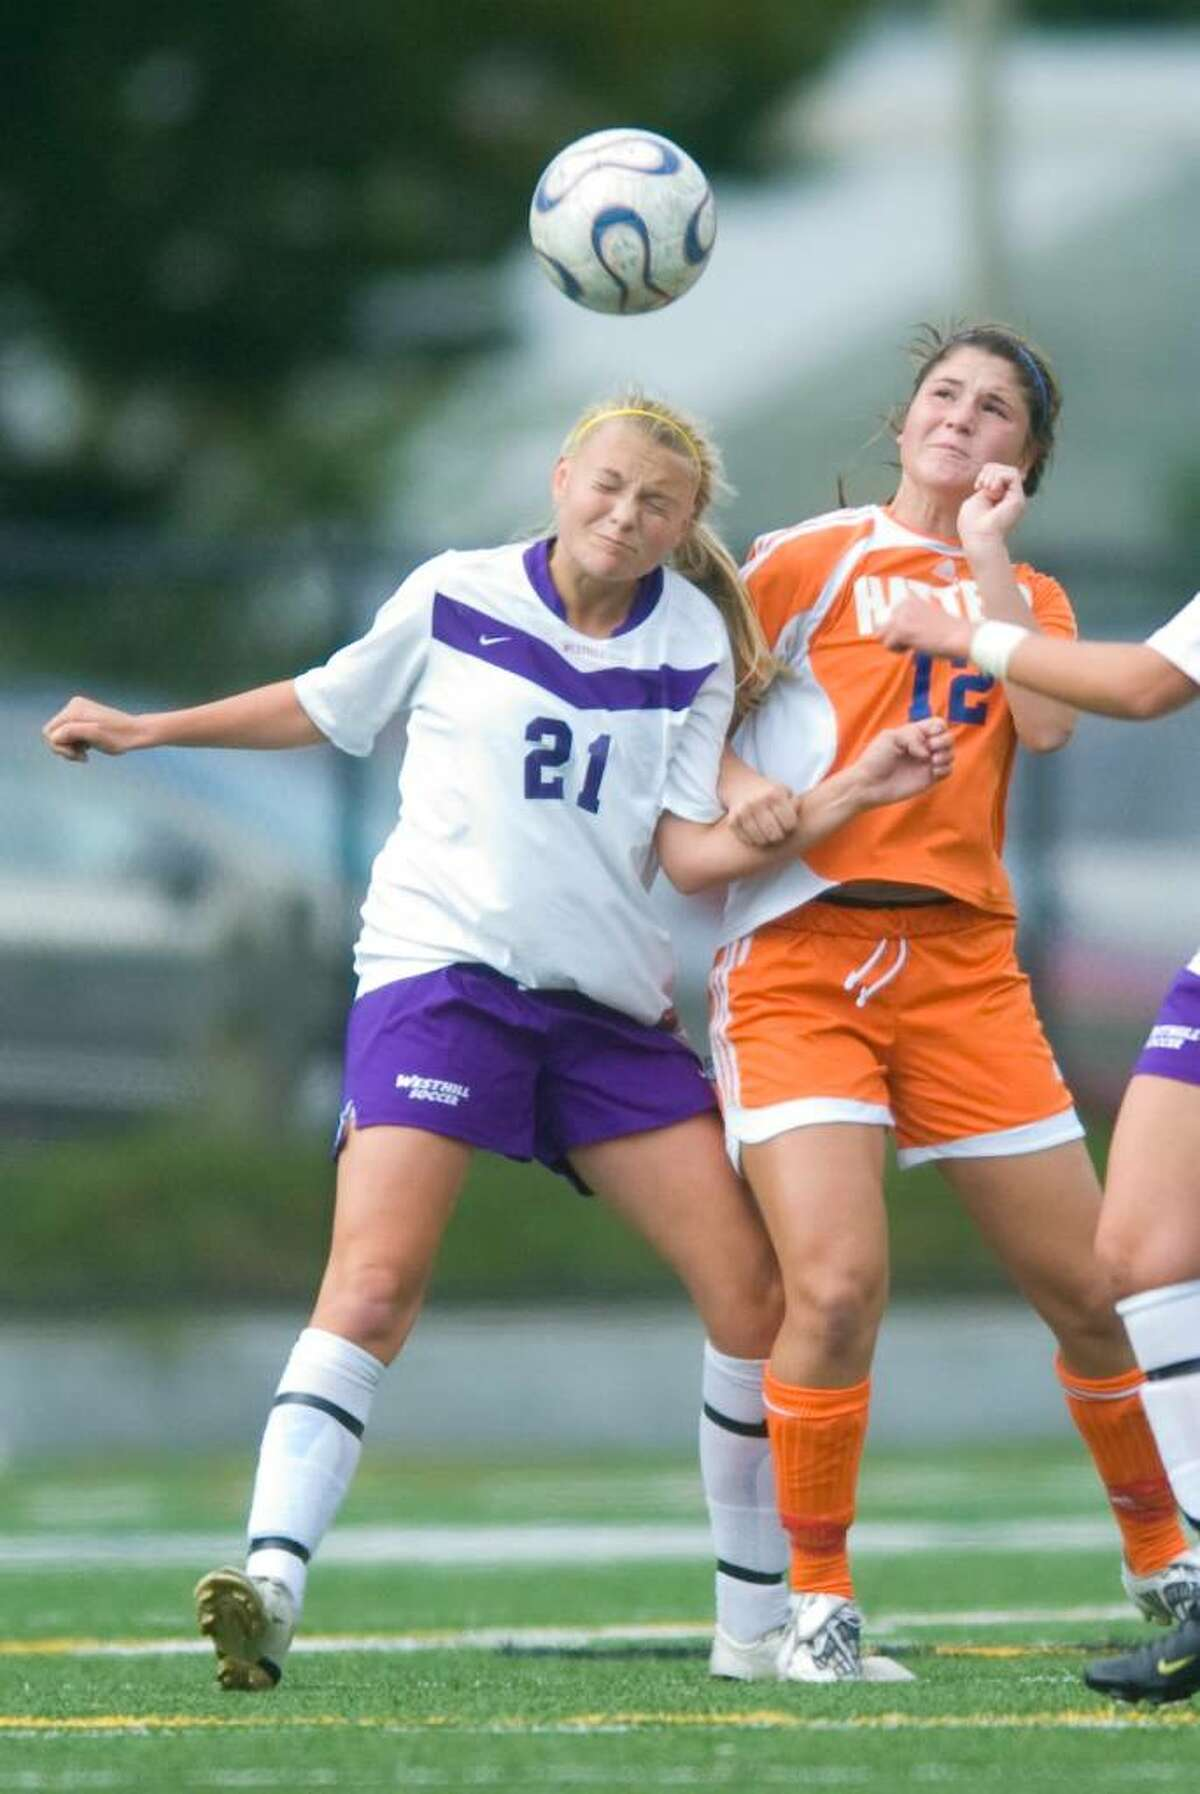 Westhill's Kirsten Eriksen, left, and Nicole Lafonte, right, during an FCIAC girls soccer match at Westhill High School in Stamford on Wednesday, Sept. 30, 2009.